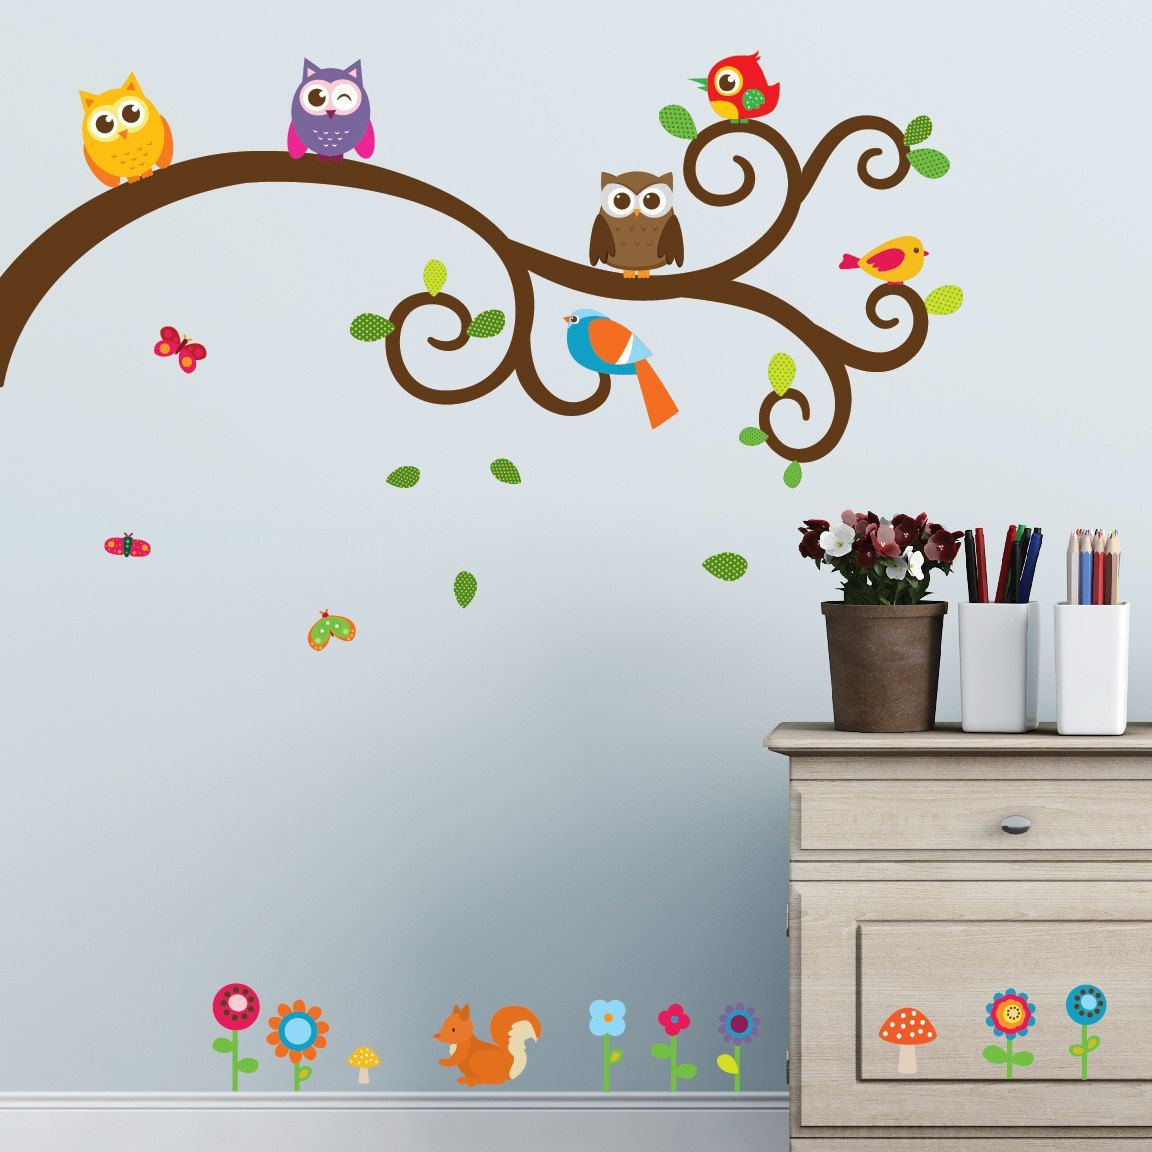 Owls And Friends Wall Decals By Wallsneedlove On Etsy 28